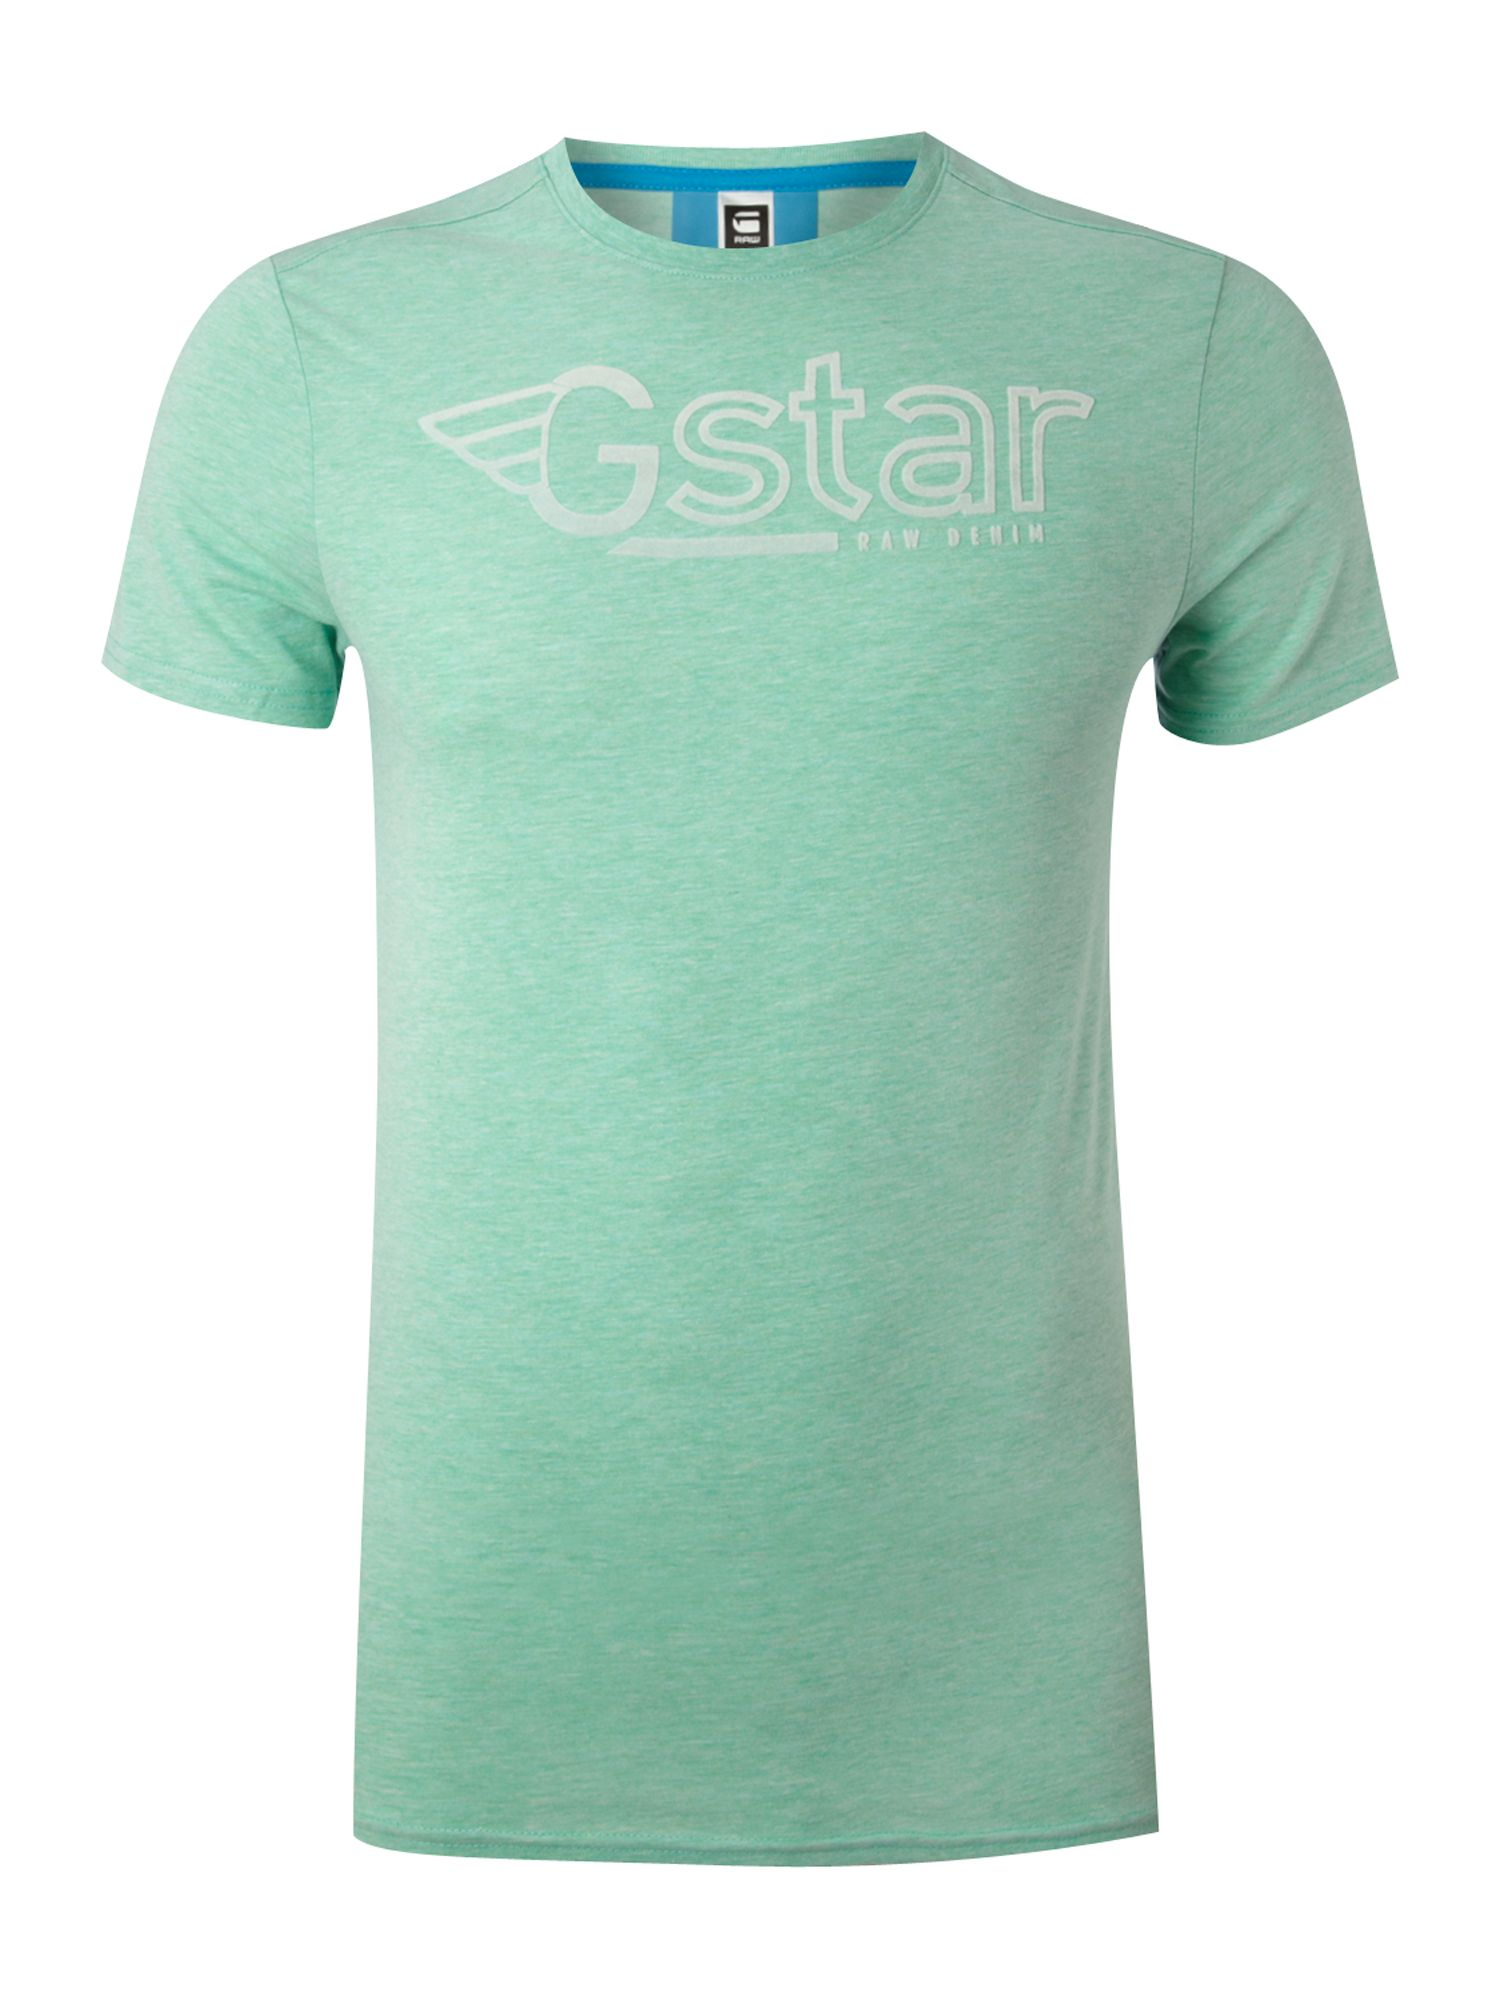 G-Star Mens G-Star Climber t-shirt, Bottle Green product image